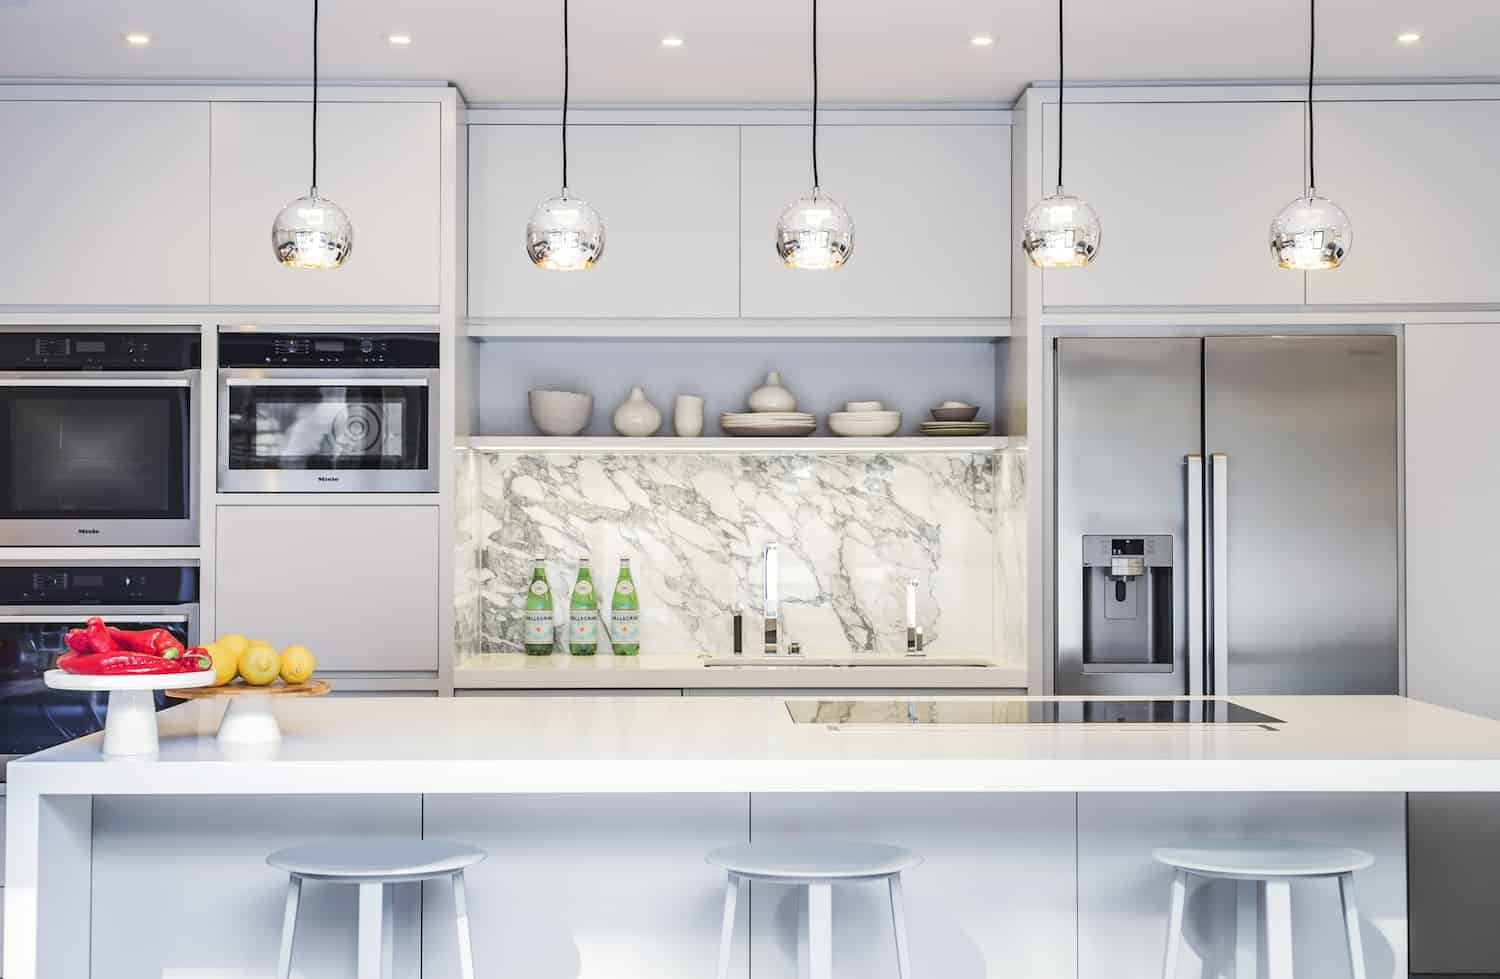 Contempory white kitchen with marble backsplash